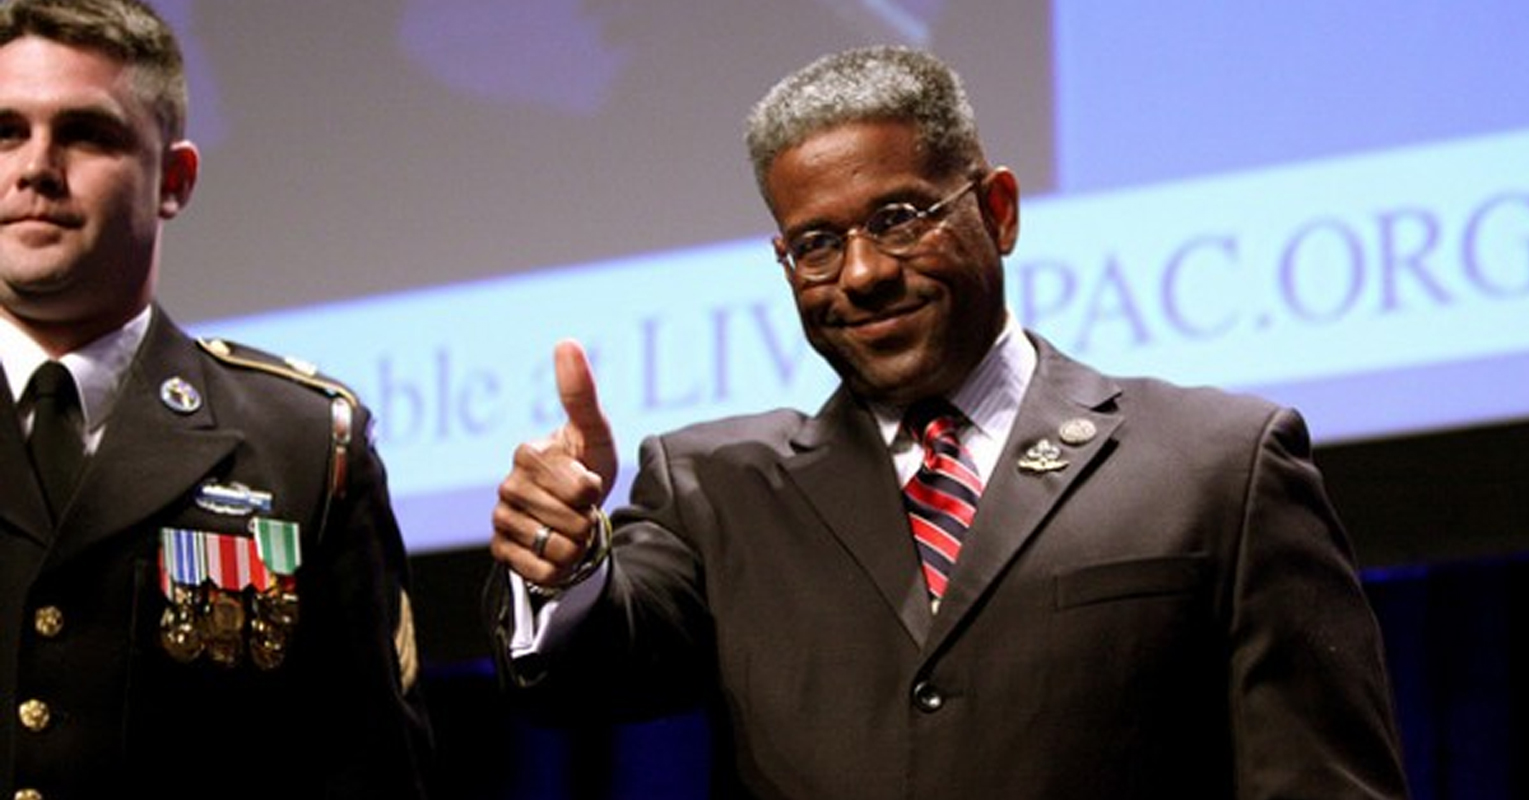 Allen West Gets Busted For Blatant Plagiarism